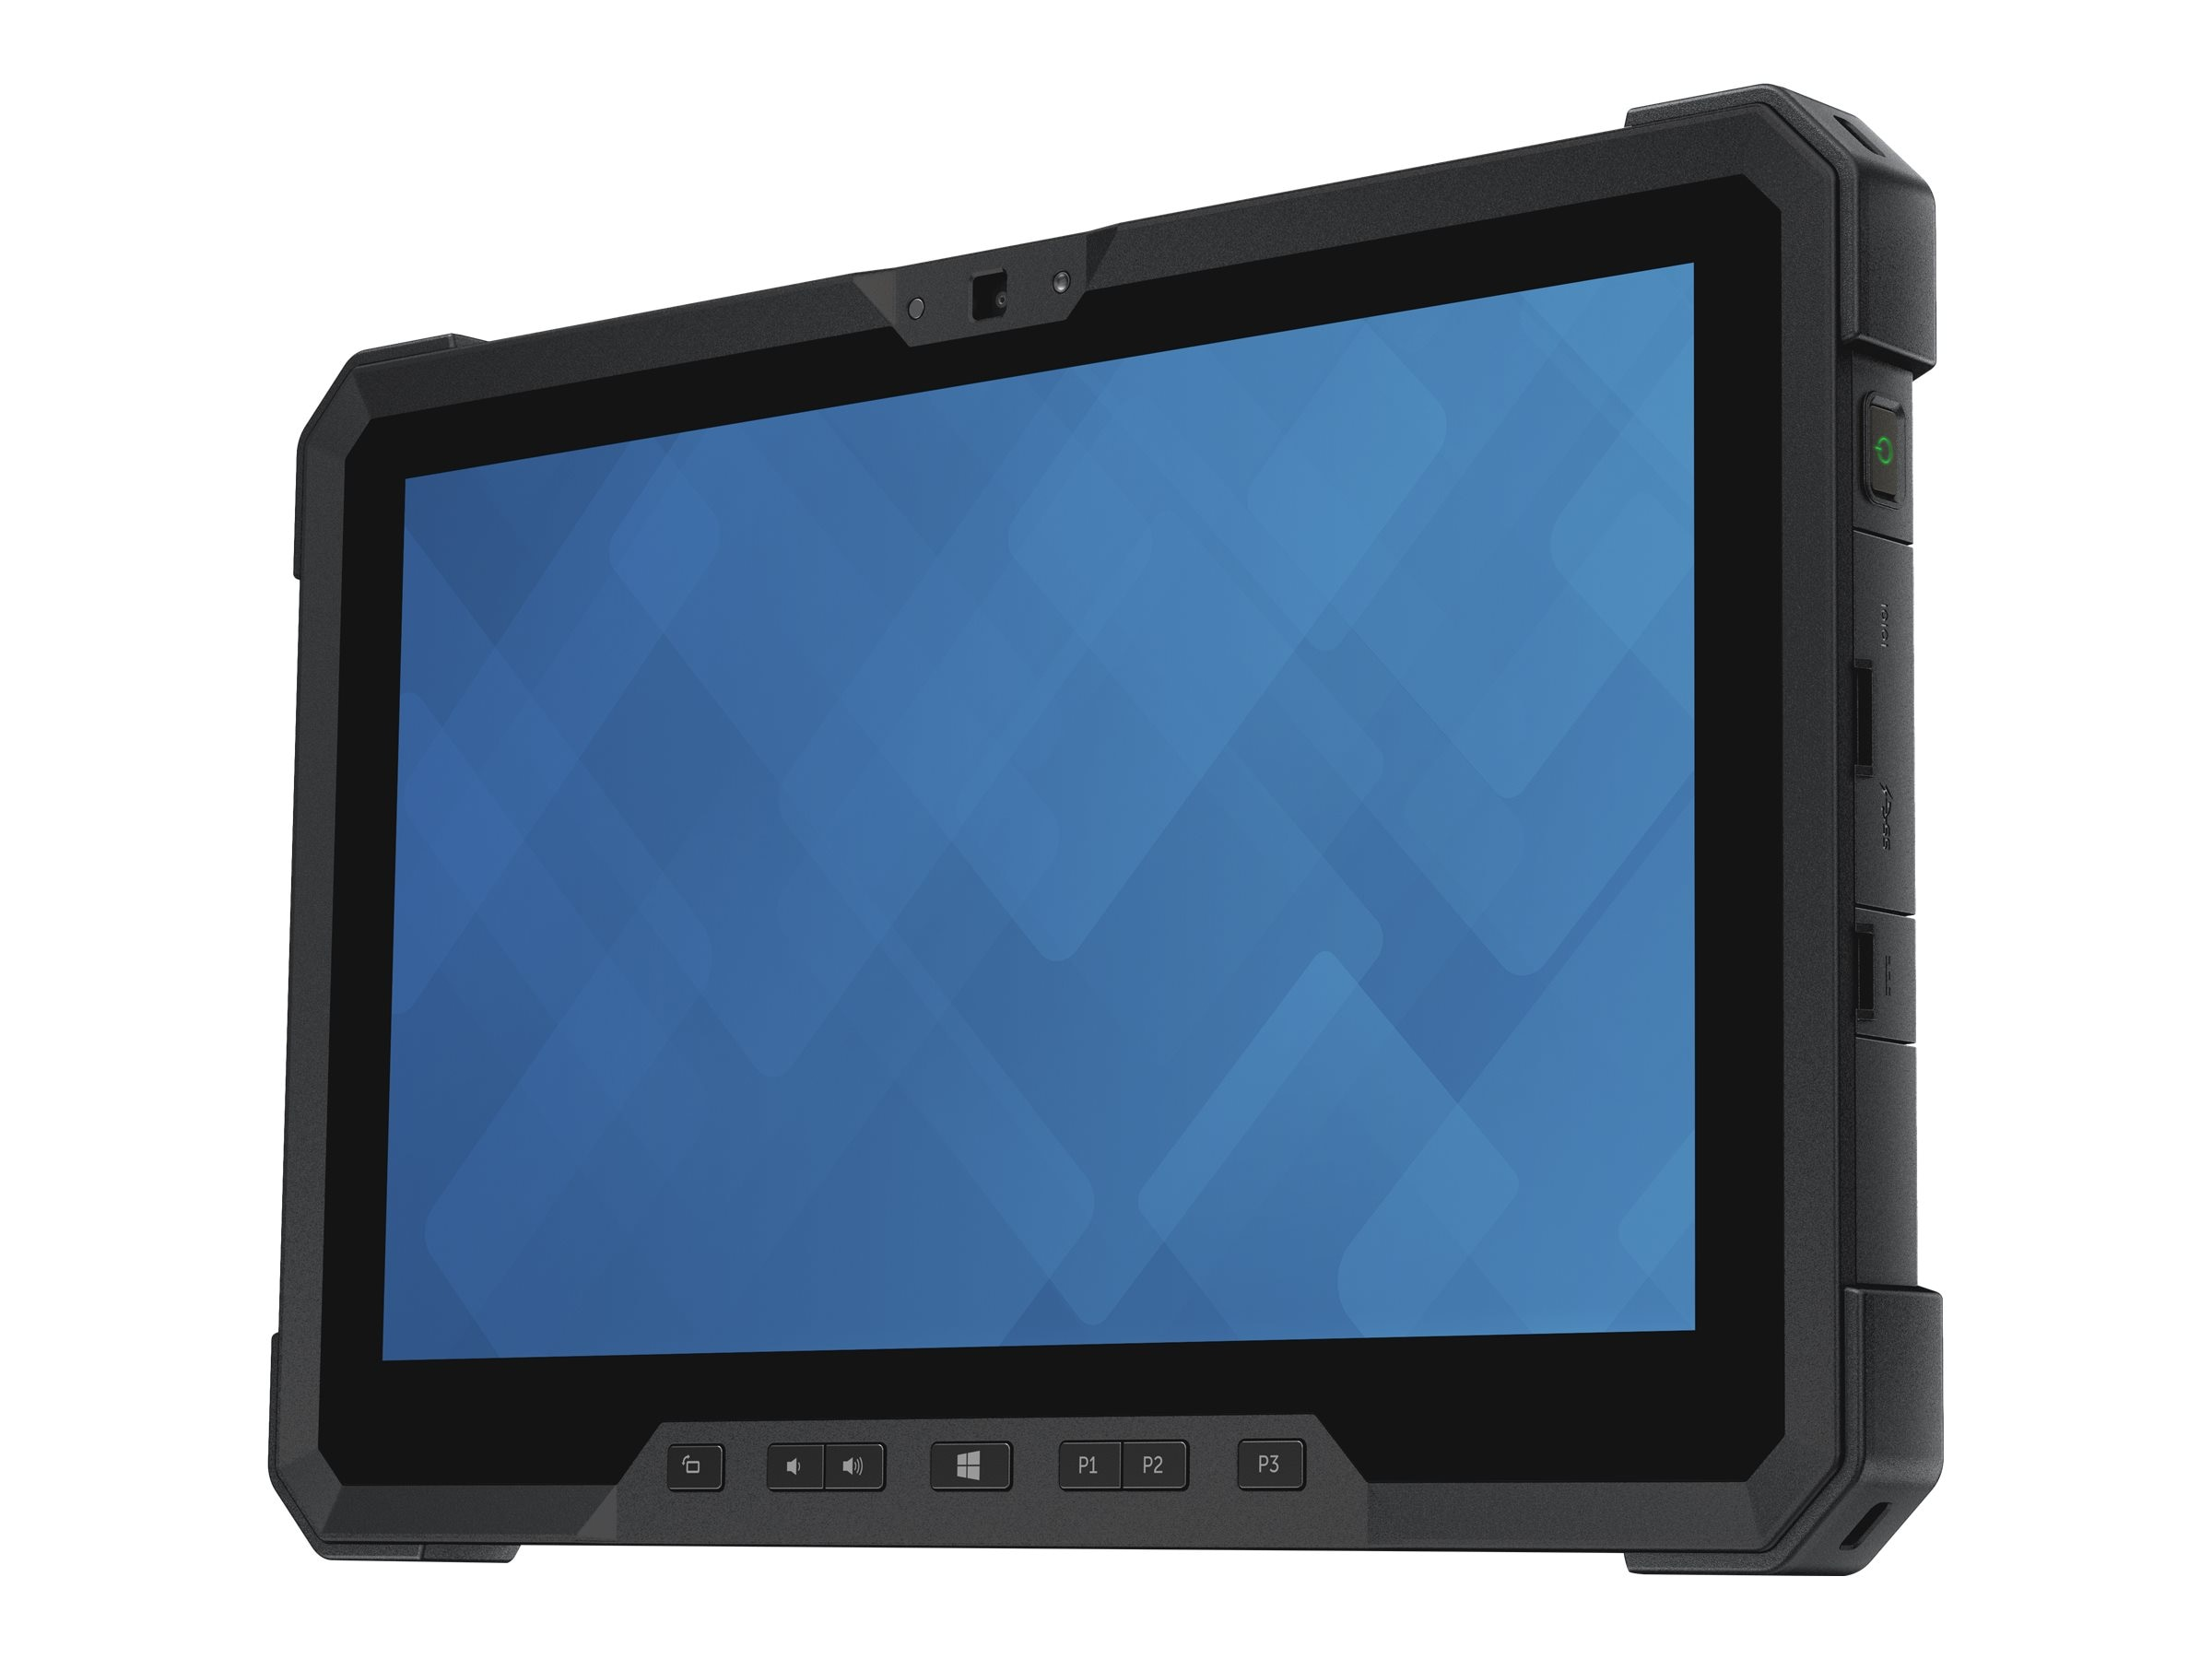 Dell Latitude Rugged Tablet 7202 1.2GHz processor Windows 7 Professional 64-bit, Windows 10 Pro